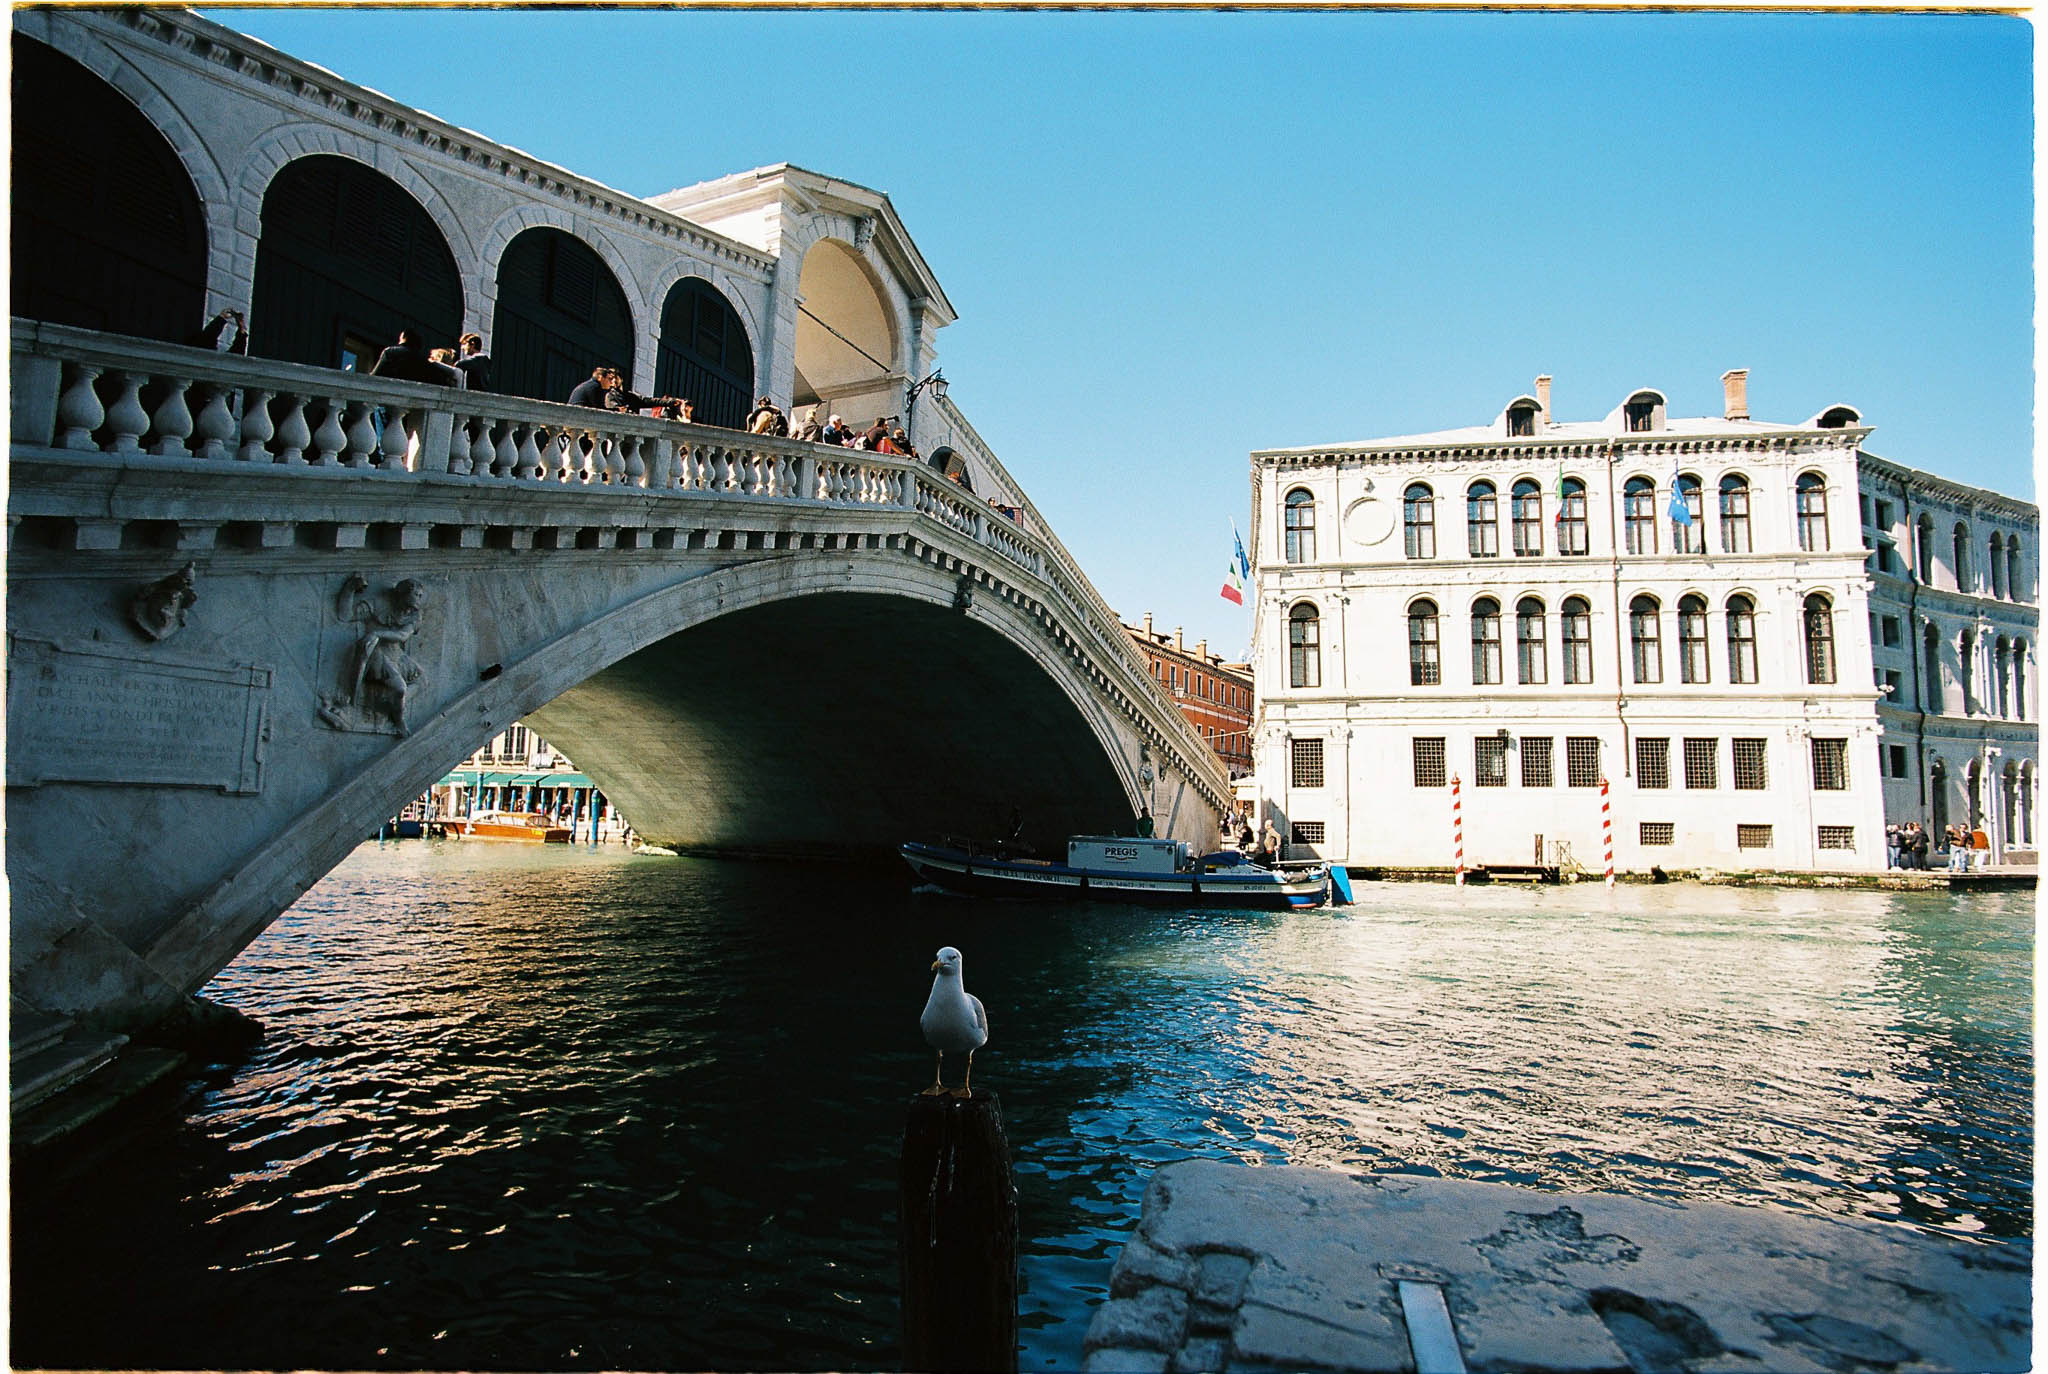 Grand canal Venice Rialto bridge Kodak Ektar 100 Zeiss 18mm 3.5 distagon